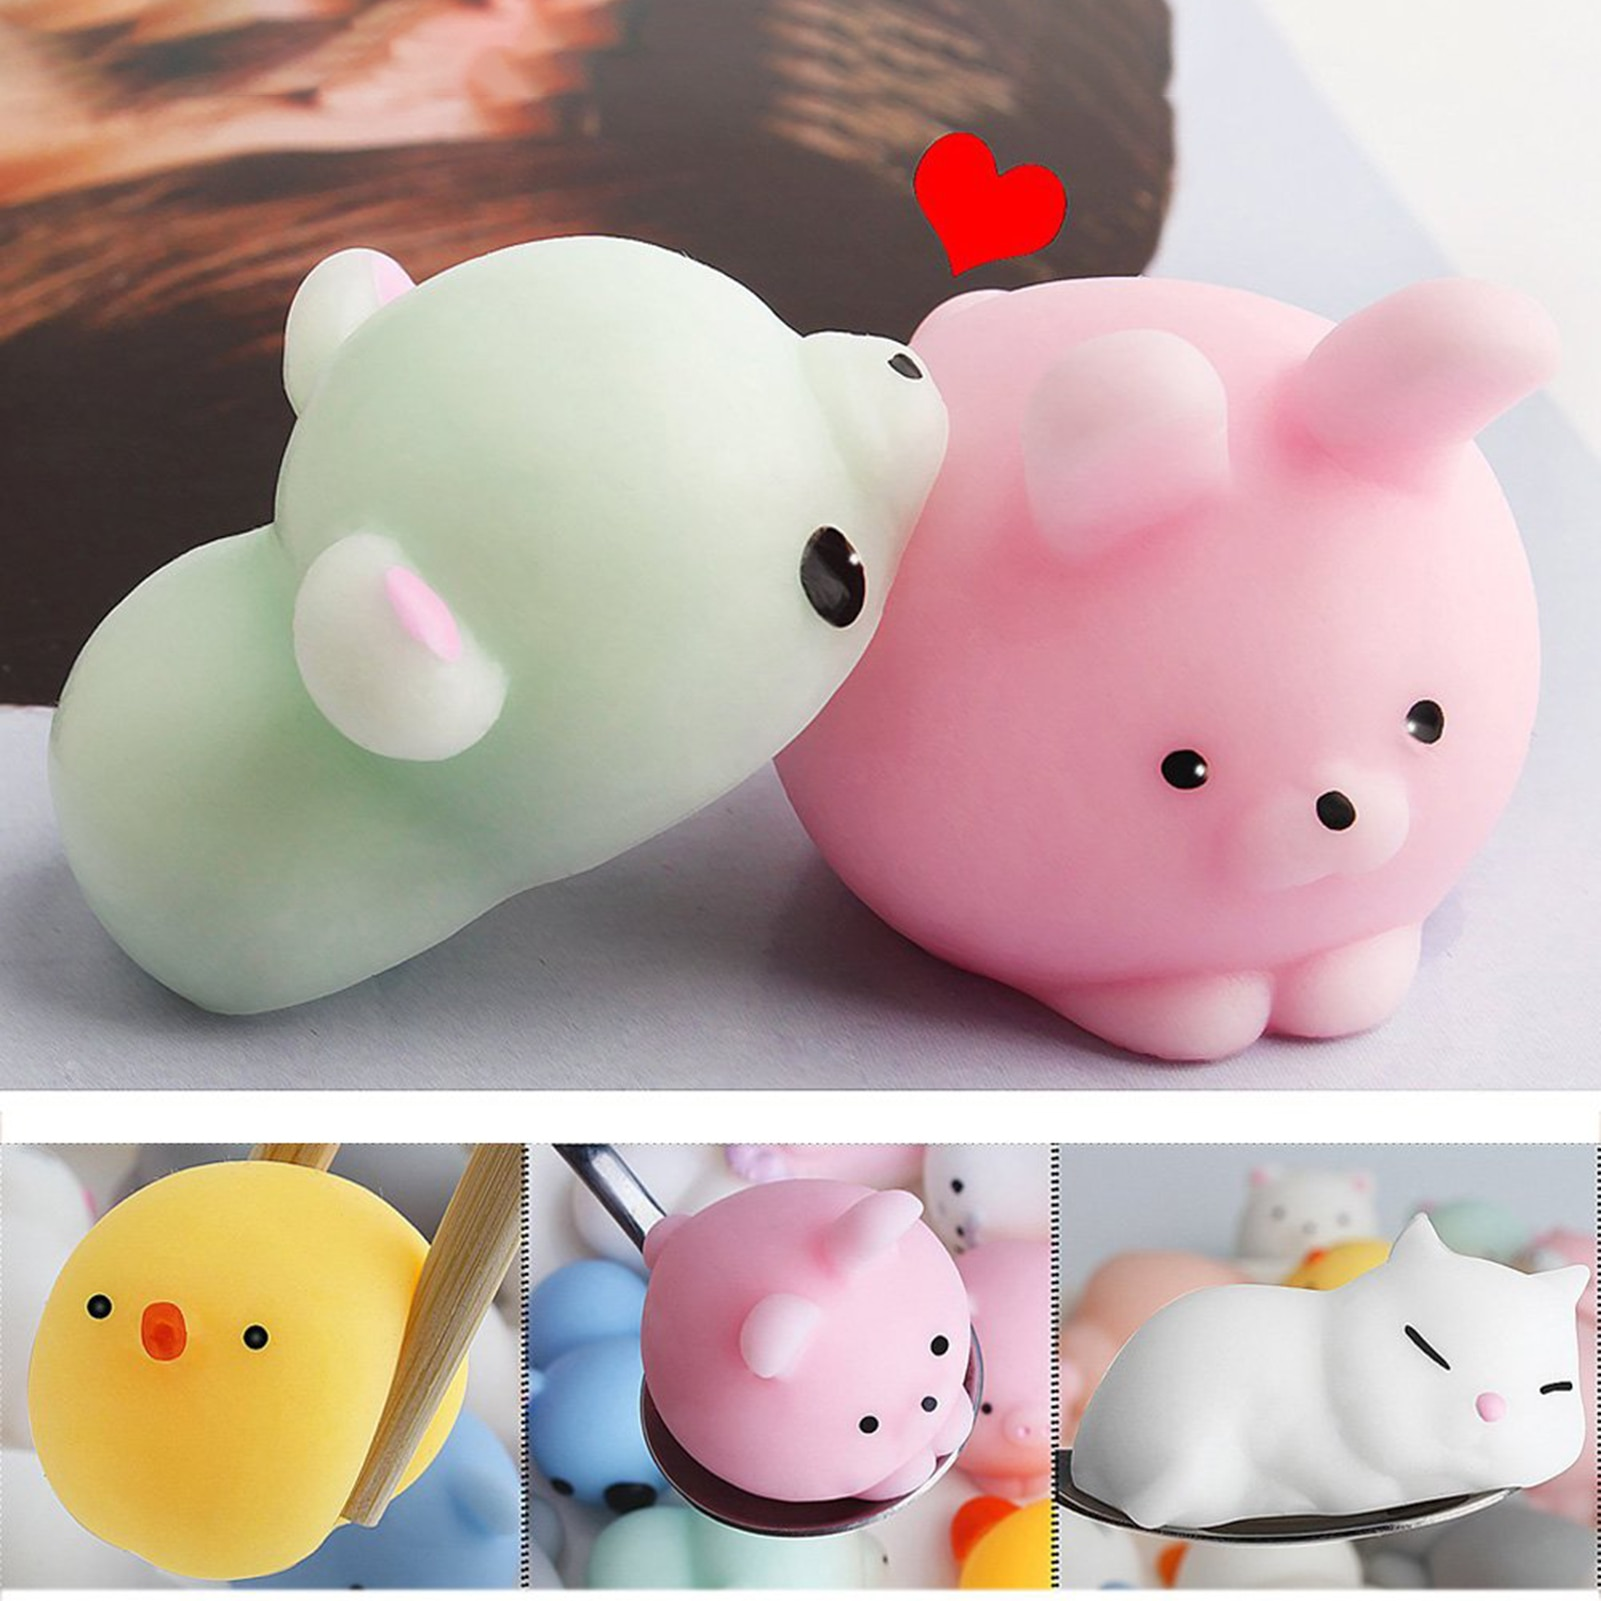 24 Pieces New Soft Squeeze Toys Cute Cartoon Stress Relief Miniature Animal Squeeze Toy Decompresssion Toys For Kids Gifts enlarge